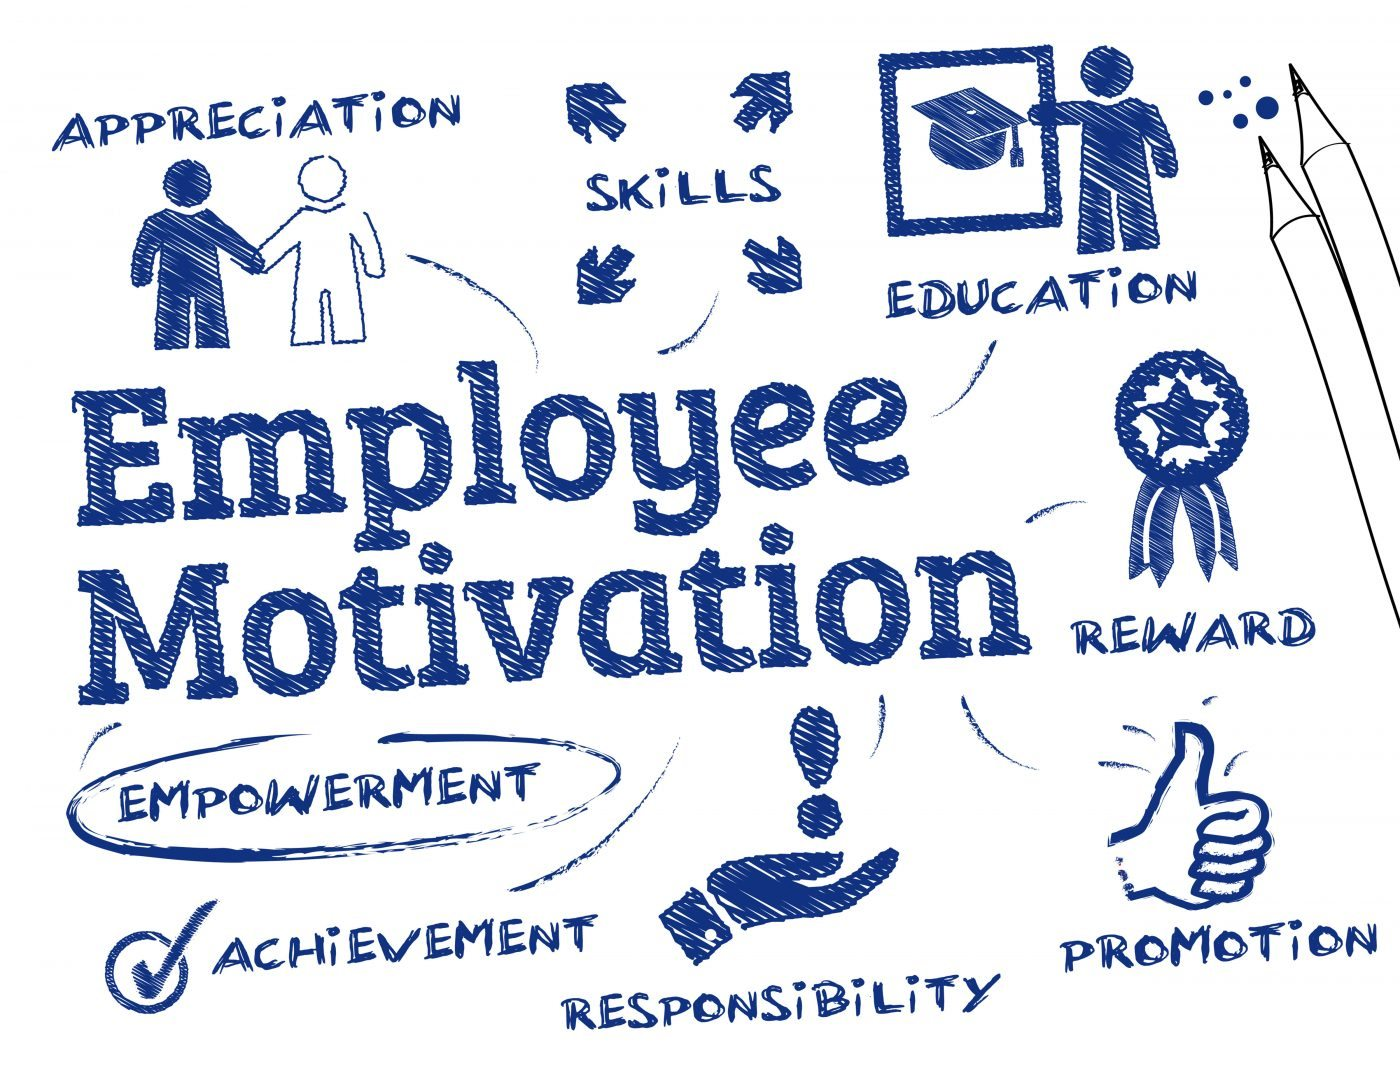 a chart showing How to increase Employee Motivation